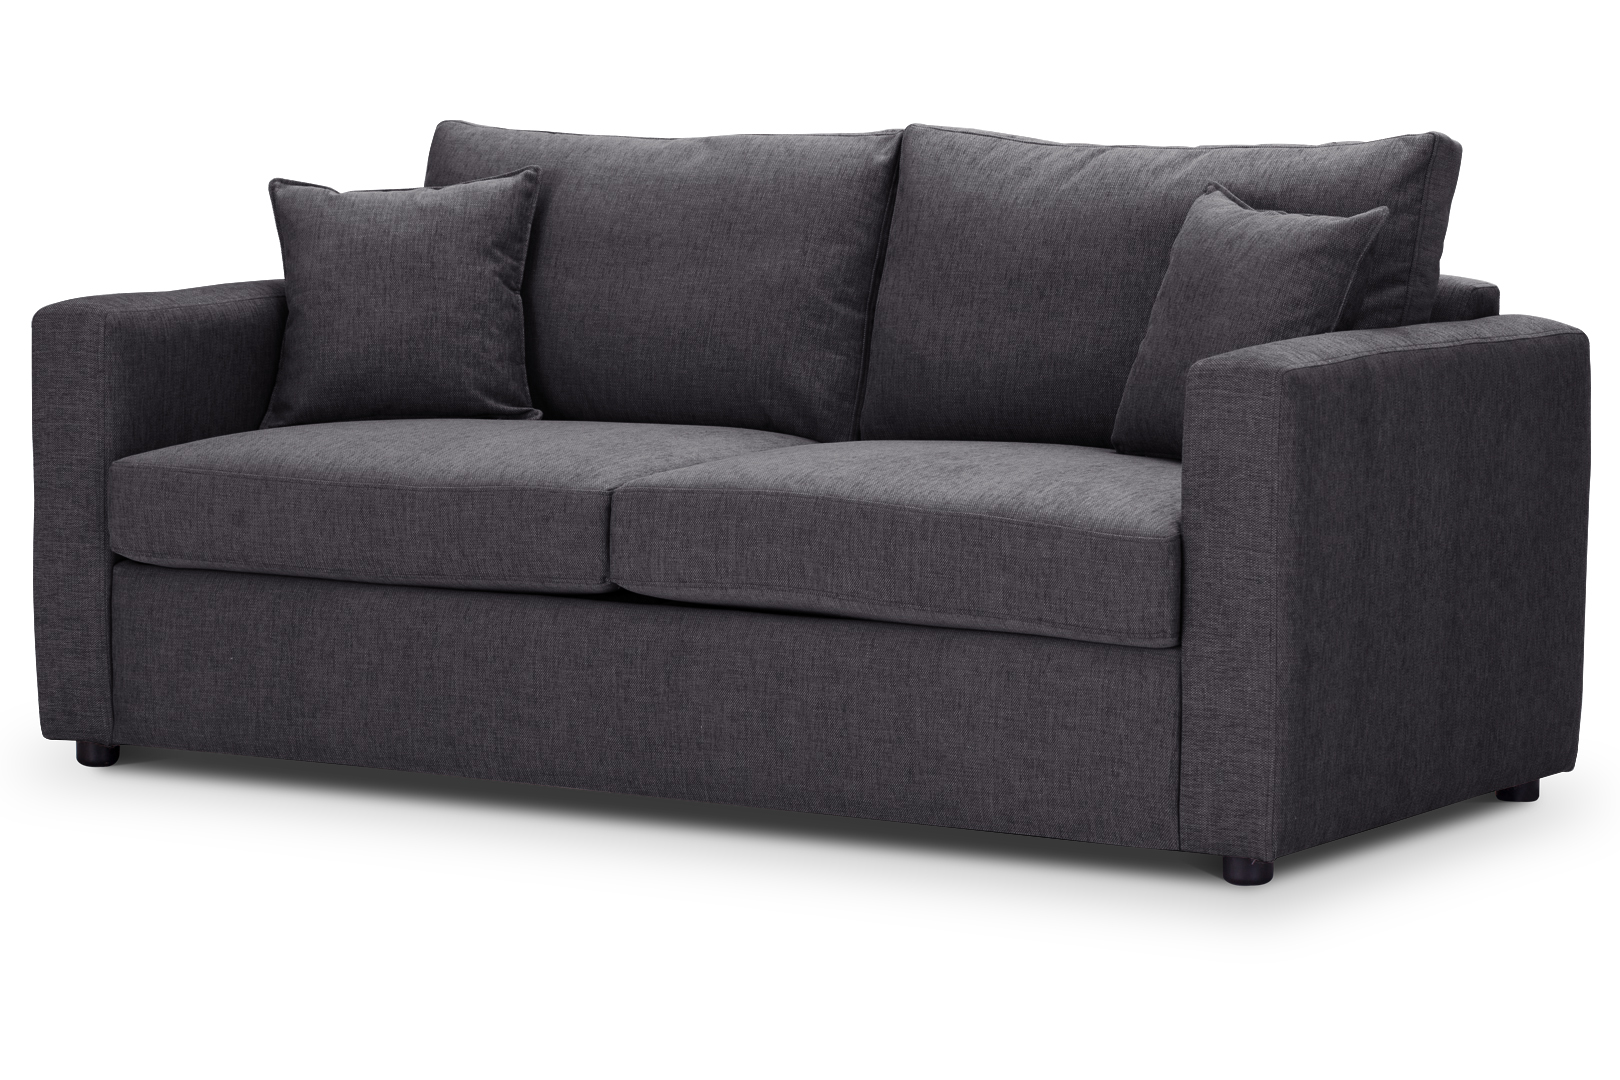 Sofa Galaxy Opening Hours Oxford Medium Sofa Bed Charcoal Highly Sprung Sofas